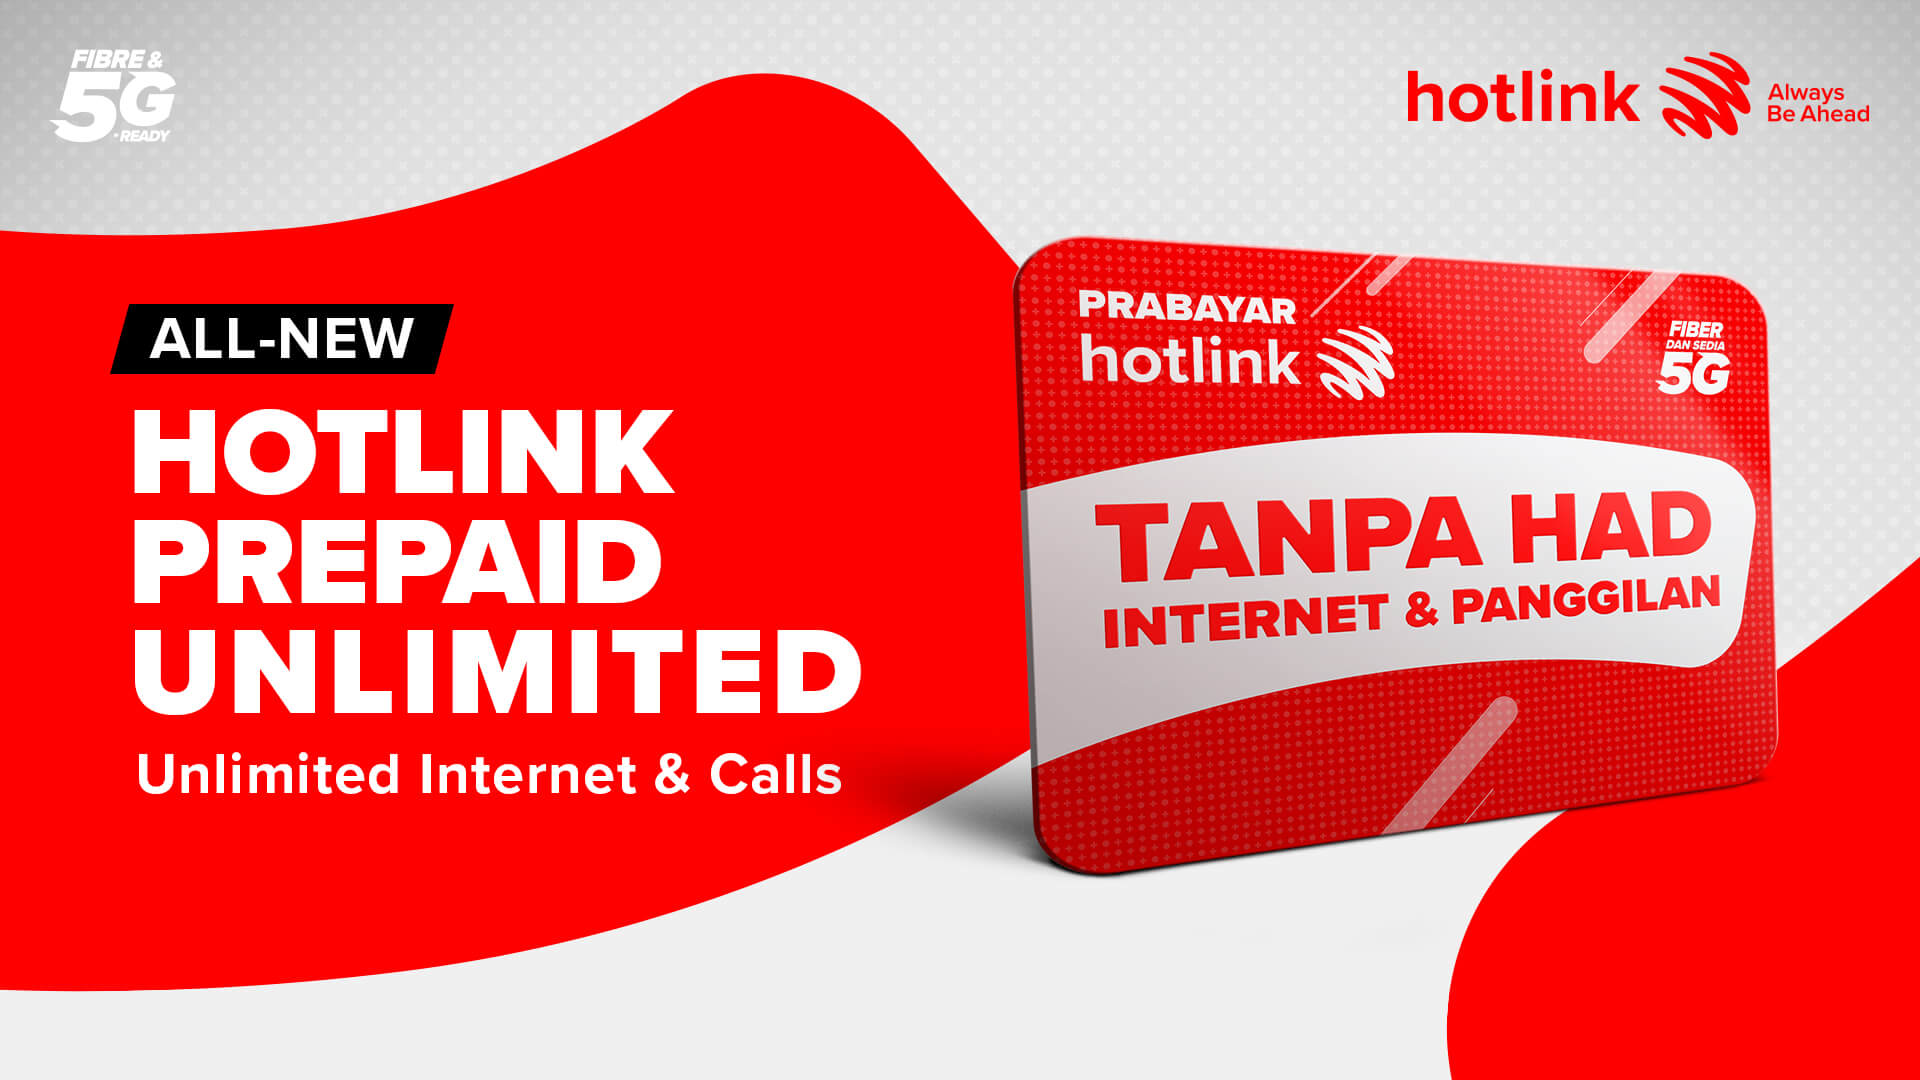 Hotlink Prepaid Unlimited Unveiled; Unlimited Internet From RM35/Month 17